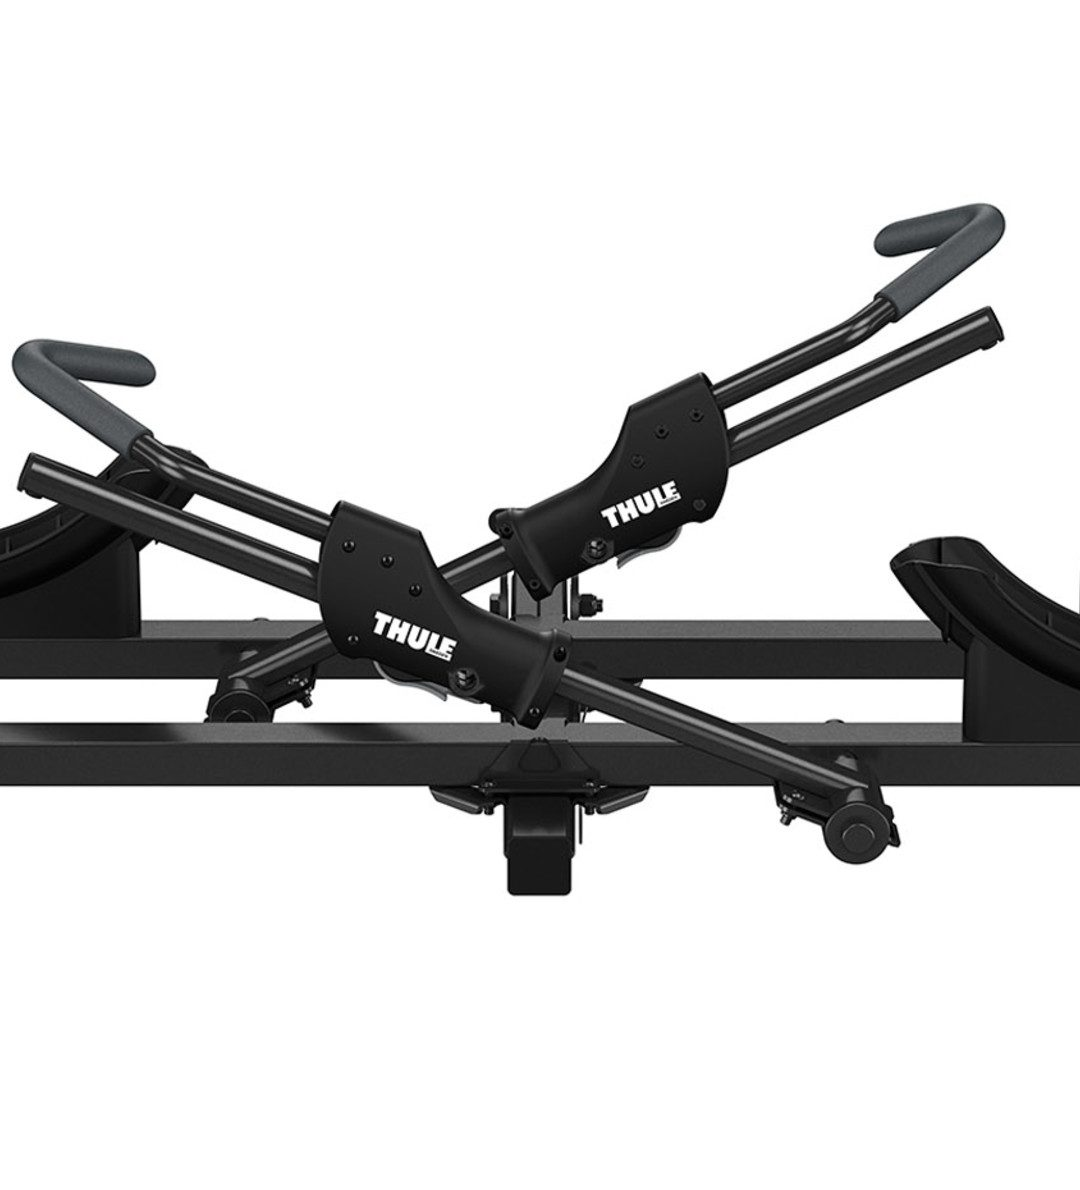 Thule T2 Bicycle Rack Review